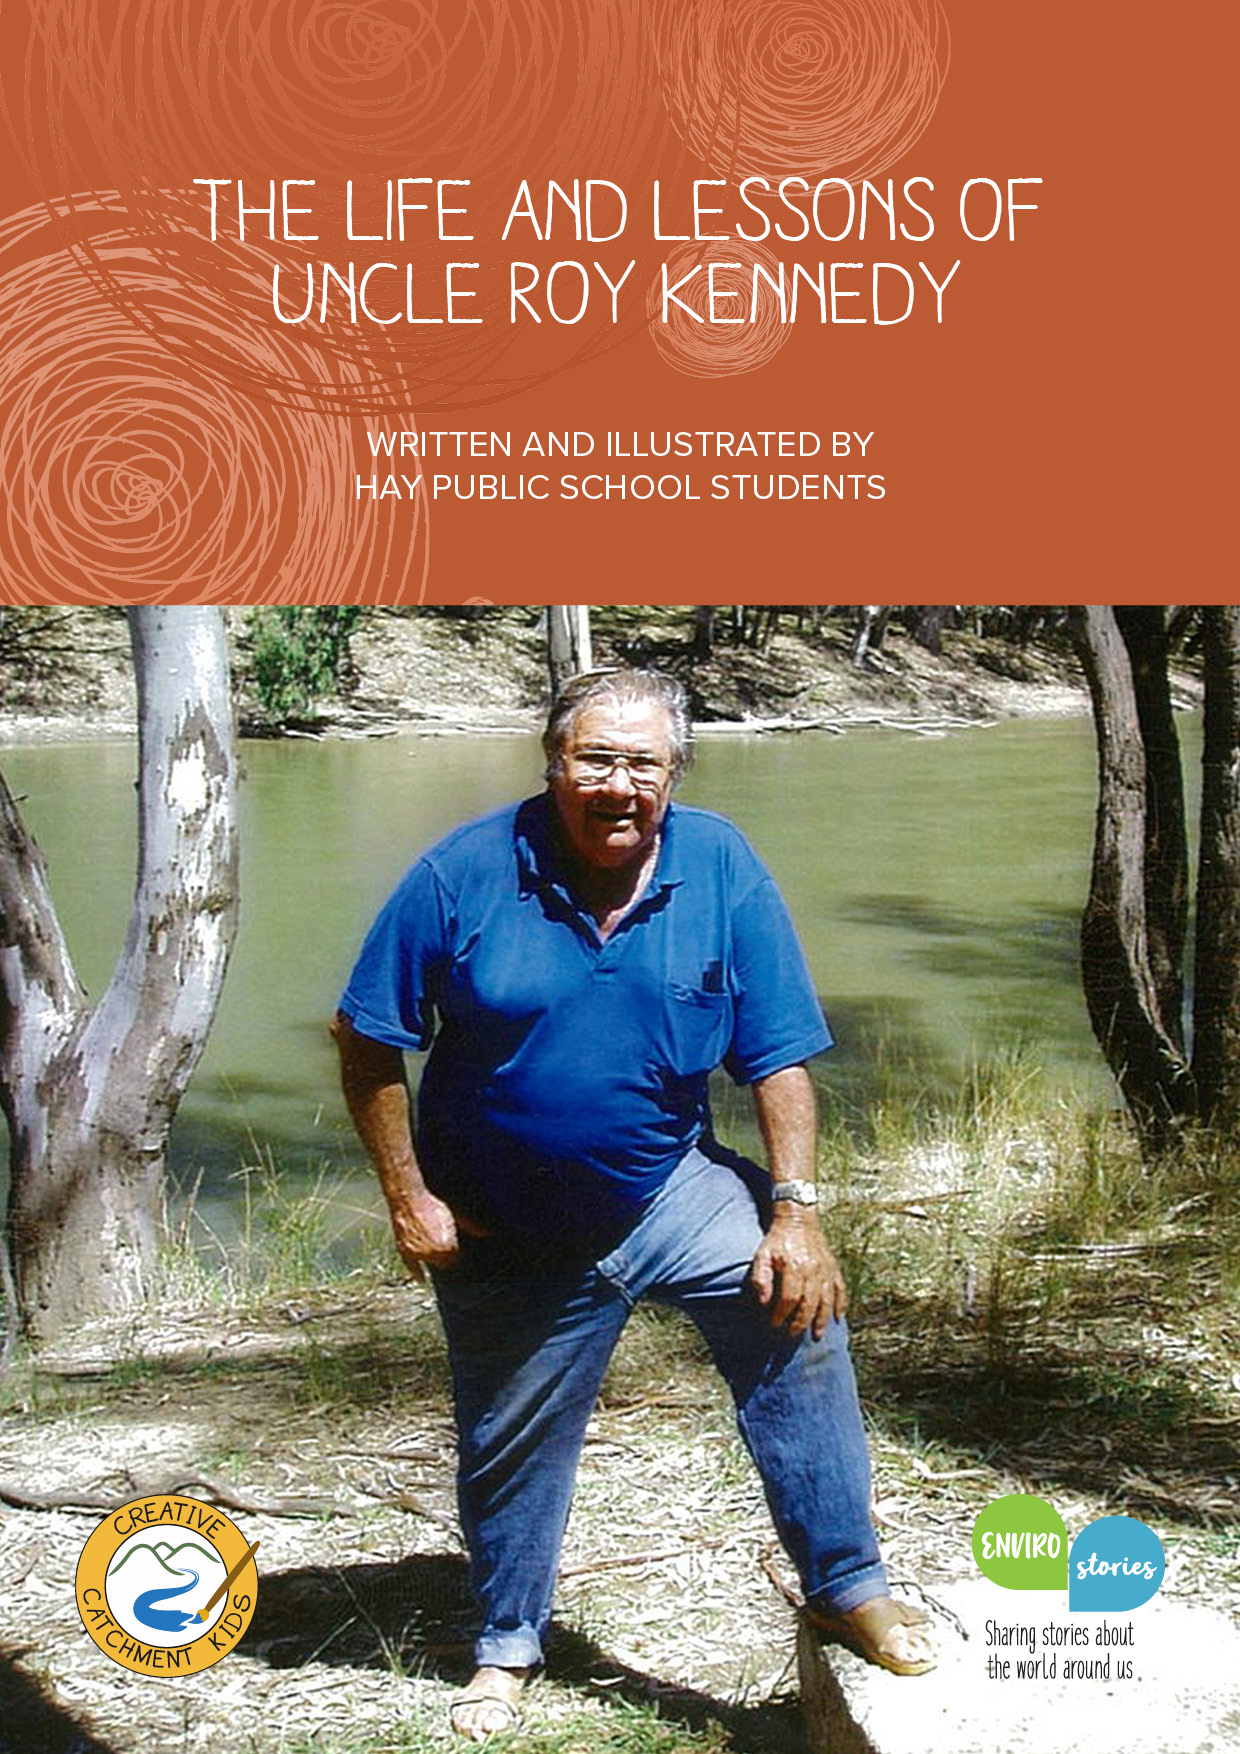 Book Cover - The Life and Lessons of Uncle Roy Kennedy